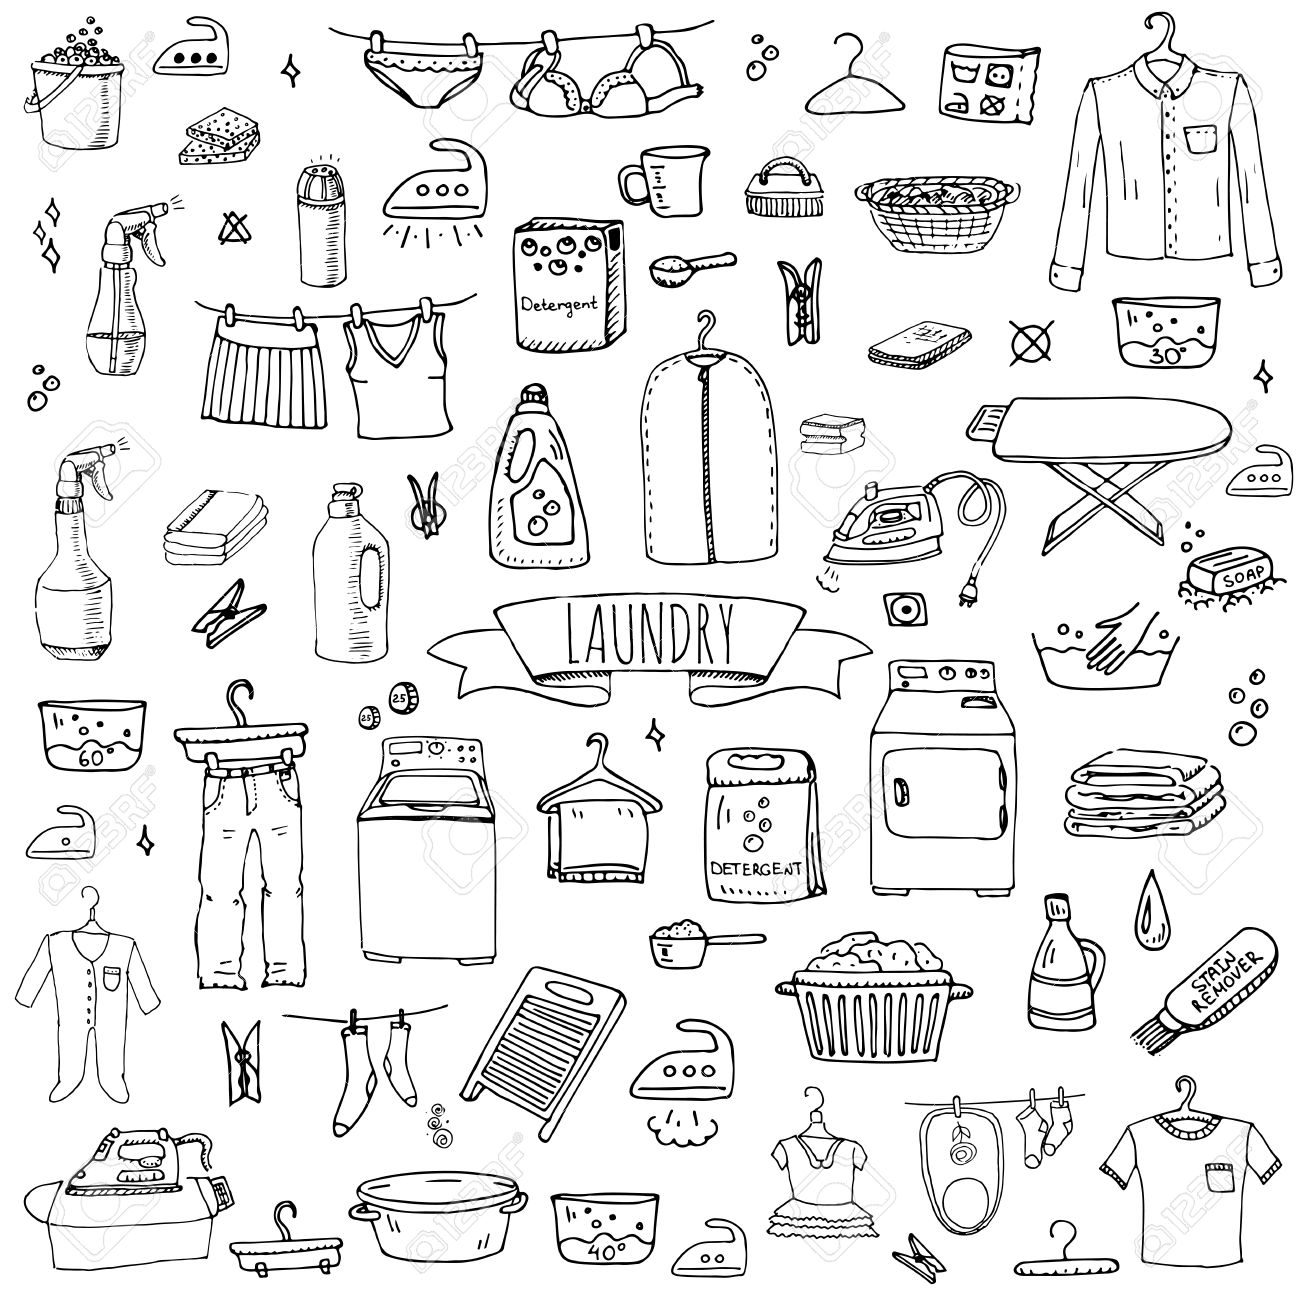 Hand drawn doodle laundry set vector illustration washing icons hand drawn doodle laundry set vector illustration washing icons laundry concept elements cleaning business symbols collection buycottarizona